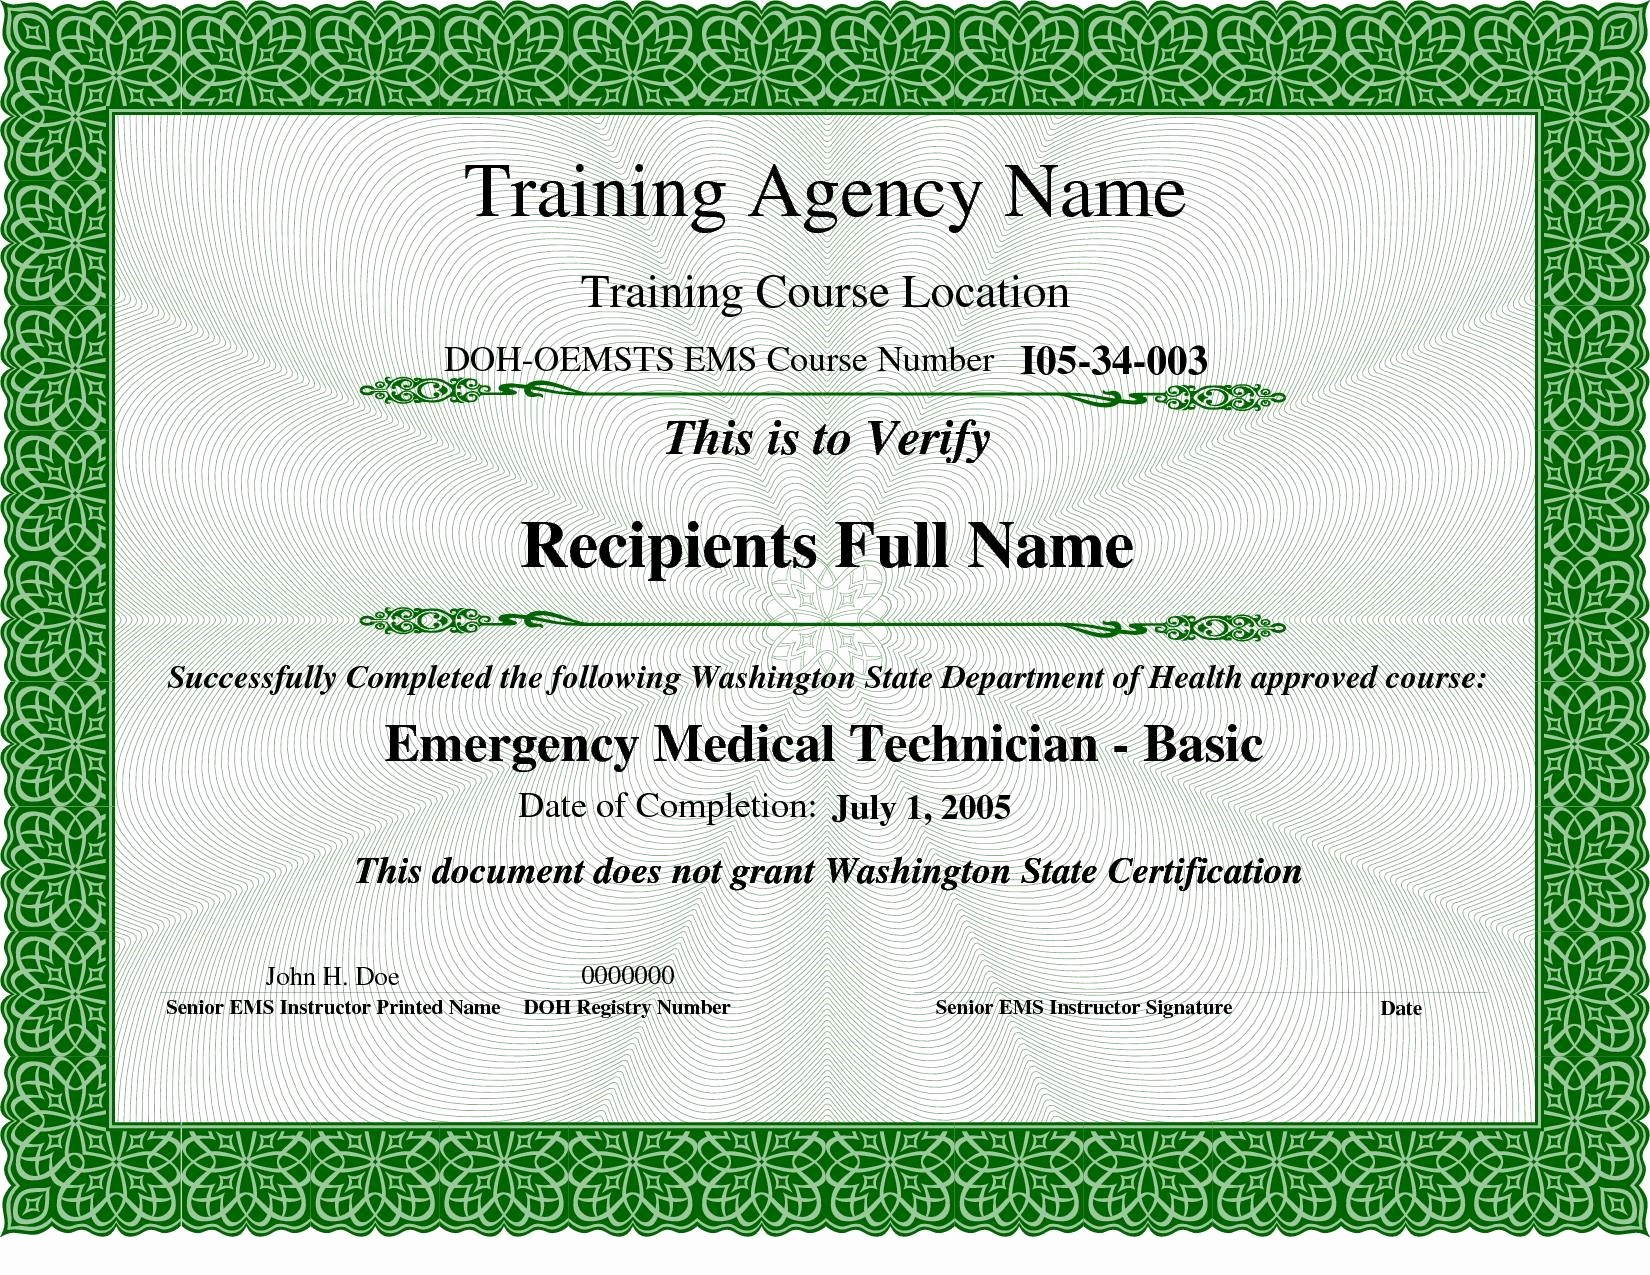 Training Certificates Templates Free Download Inspirational Training Certificate Template Download